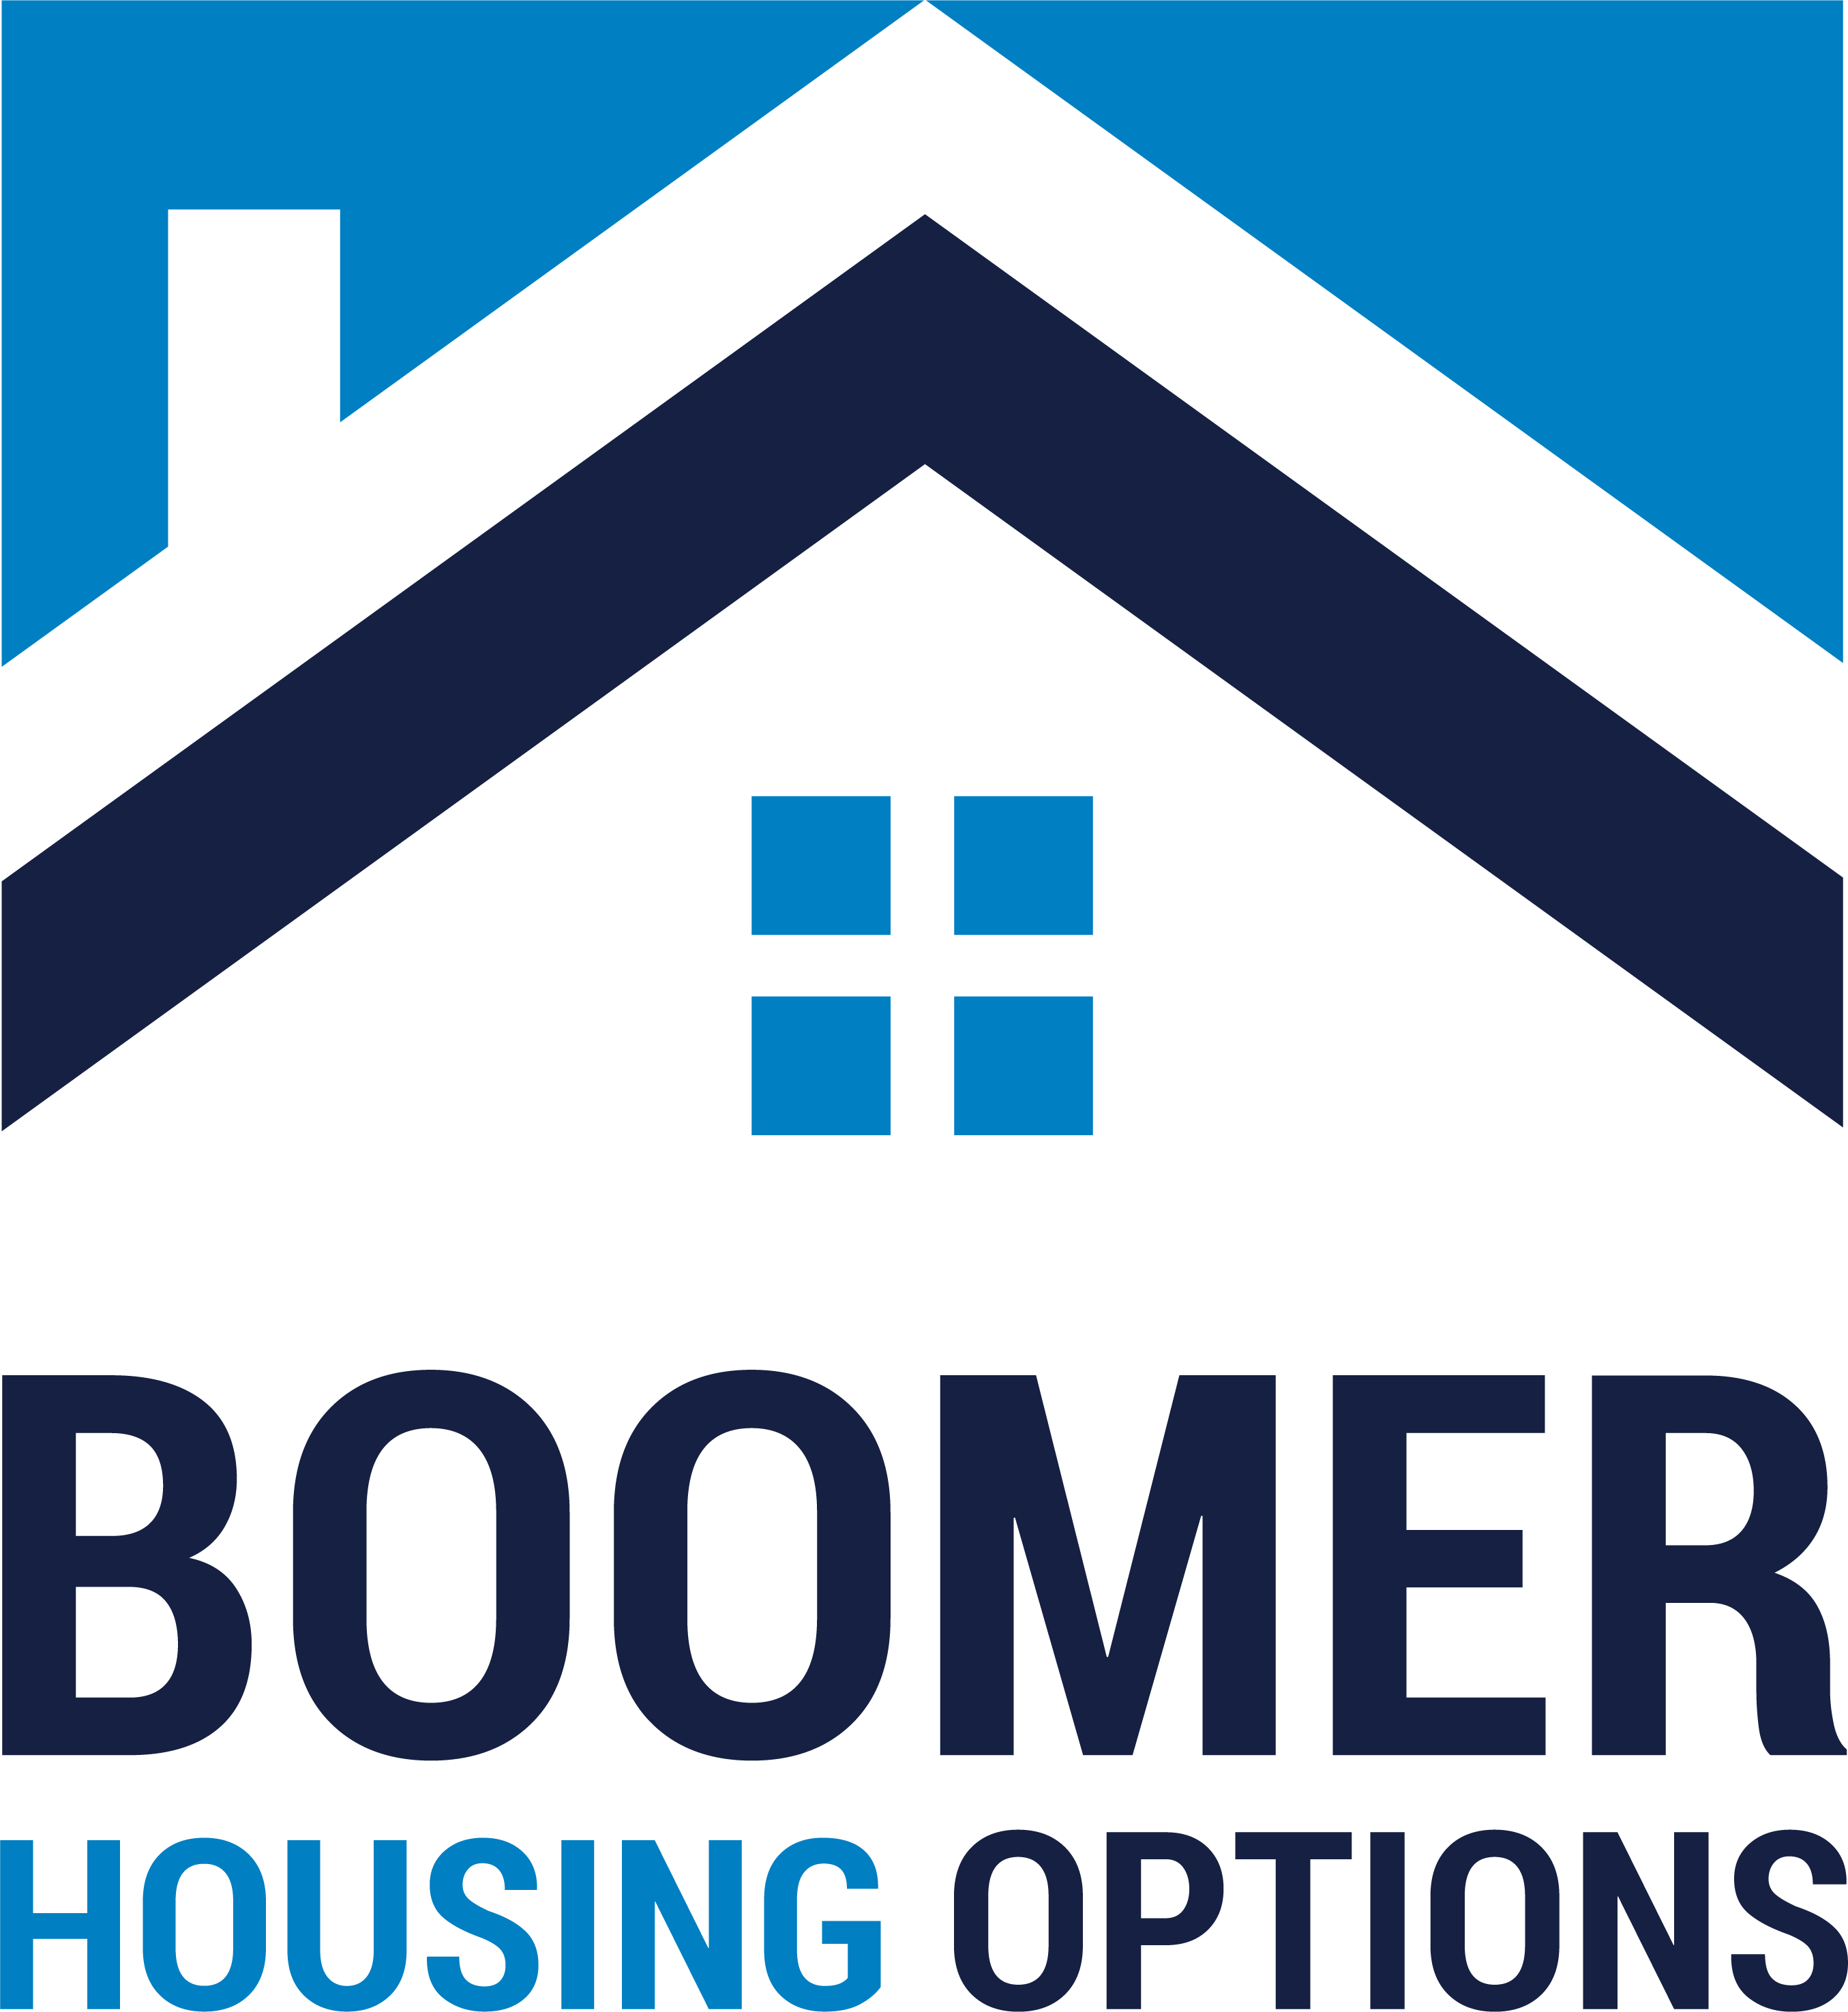 What choices do Baby Boomers have for housing?